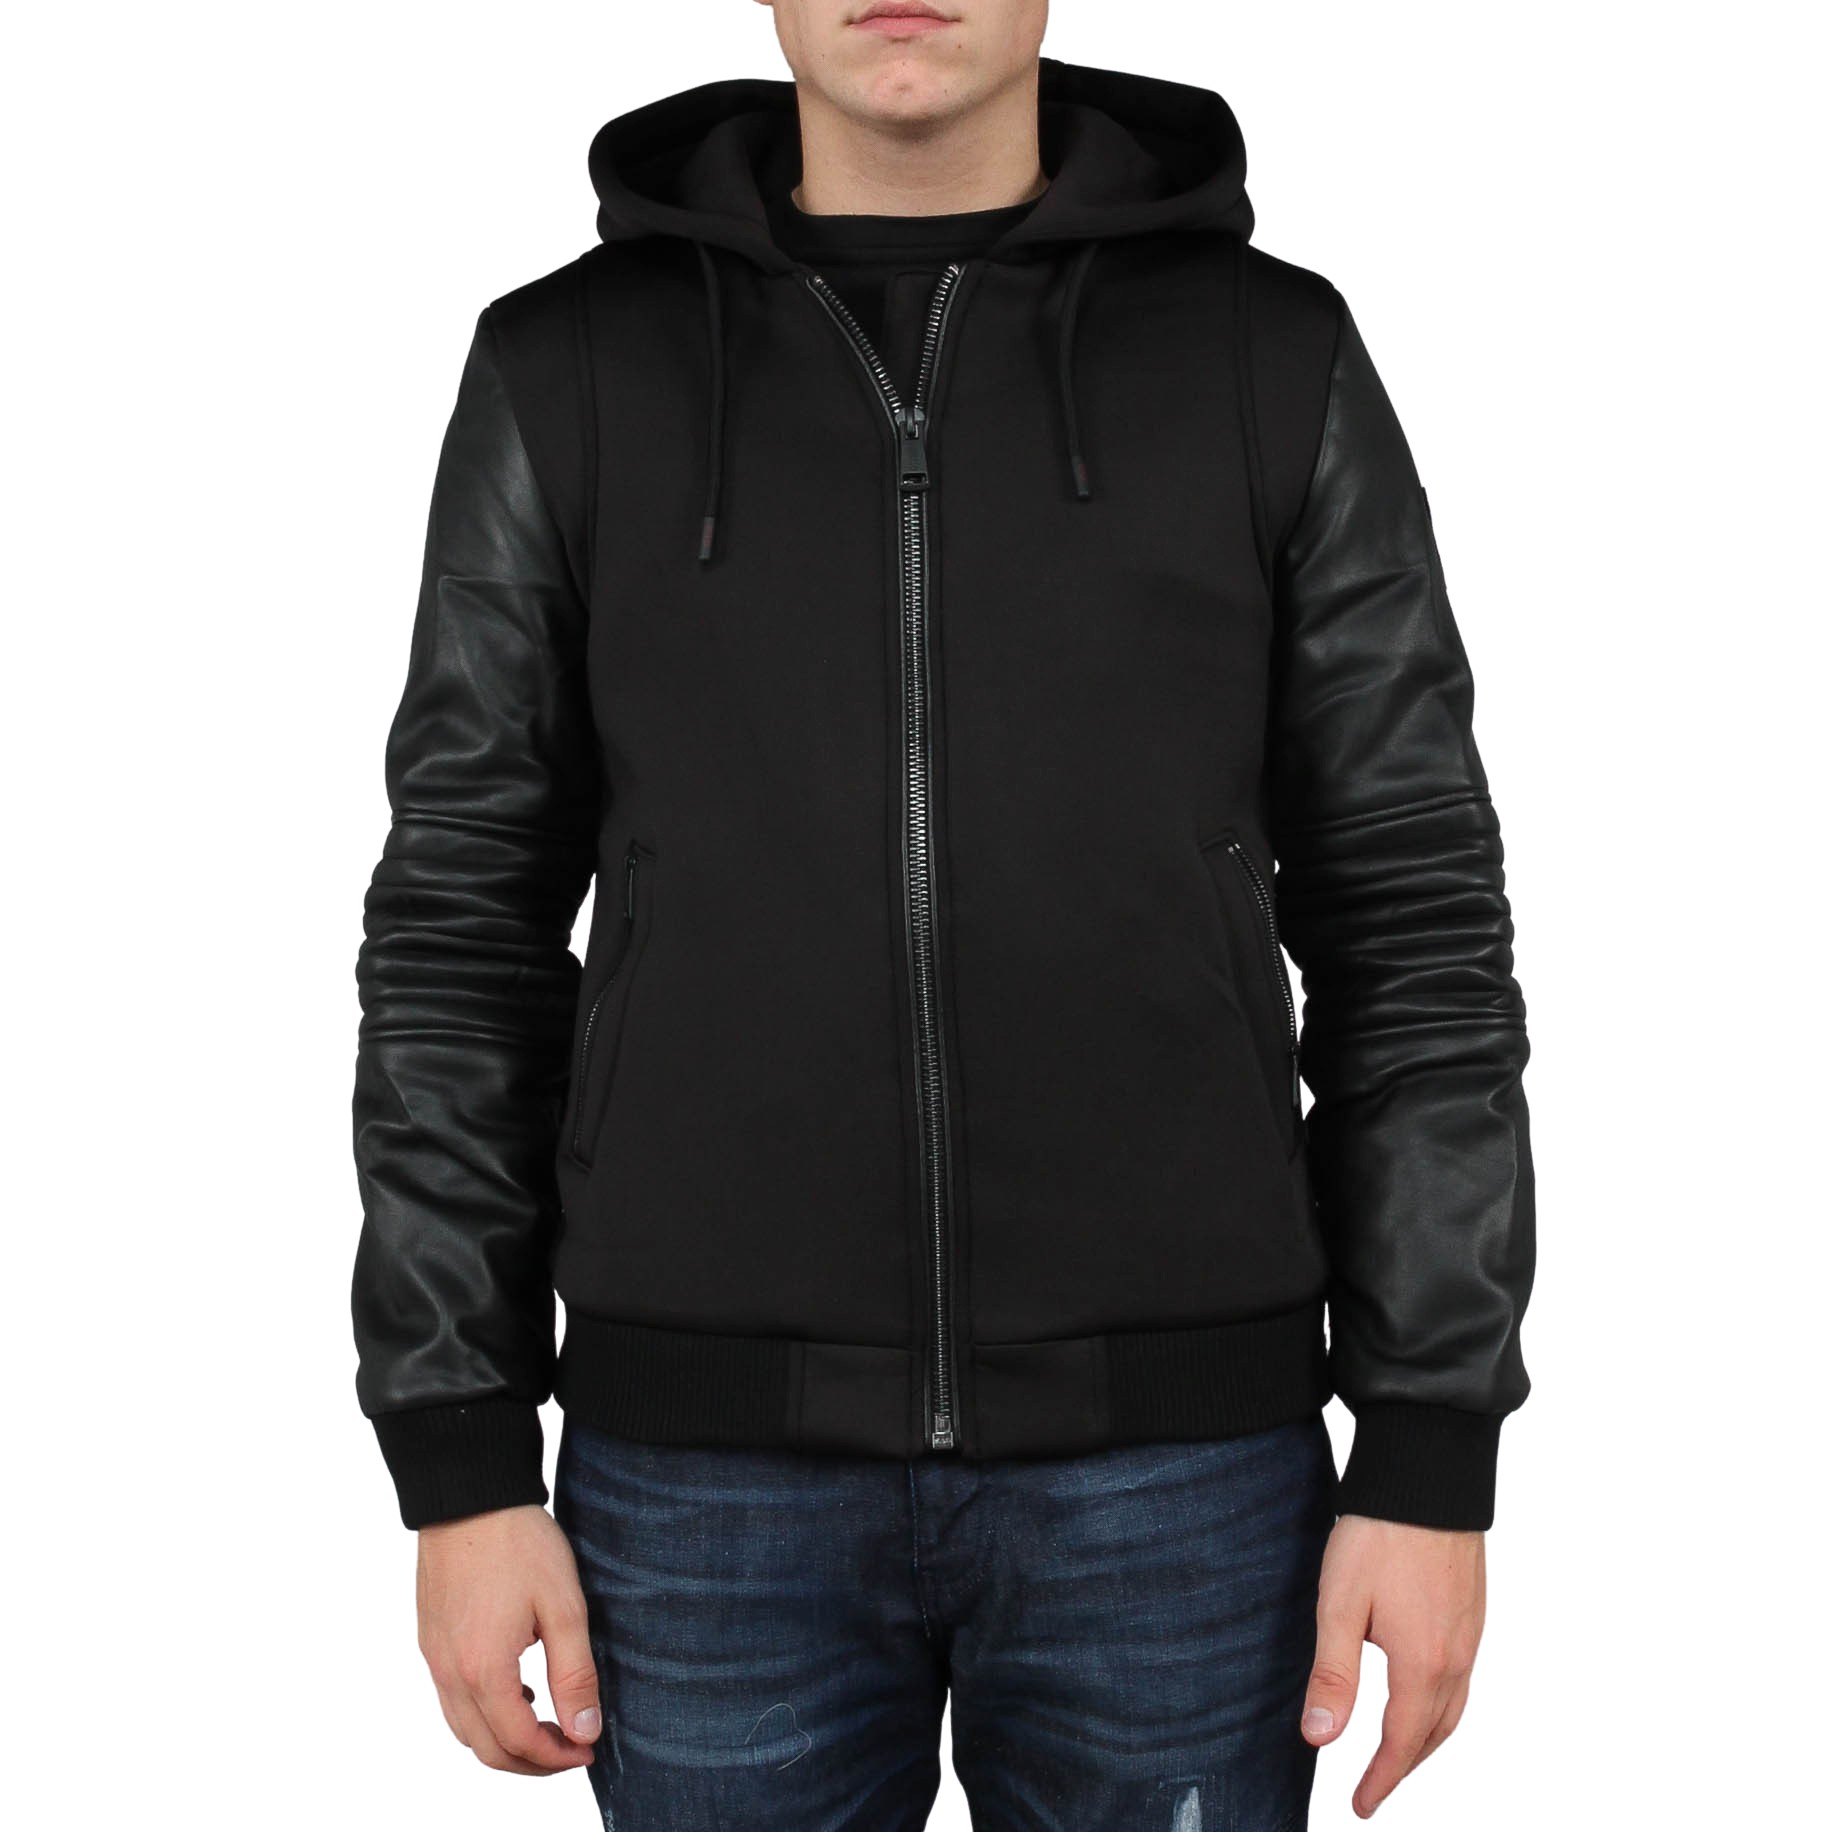 Technical Hoodie Bomber Jacket Guess